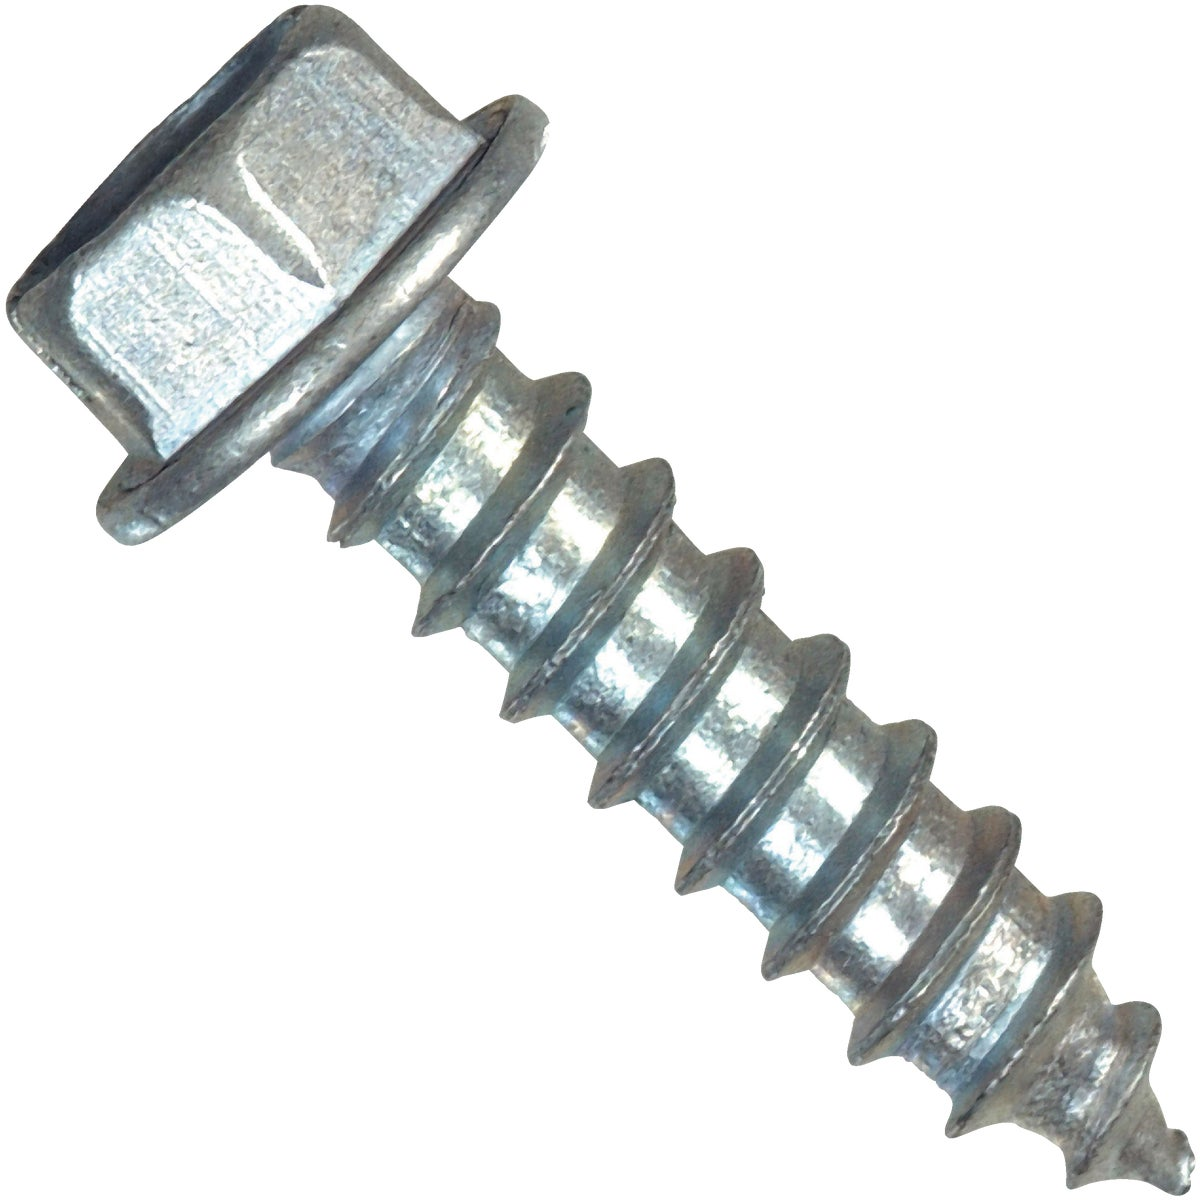 12X3/4 HWH SHT MTL SCREW - 70313 by Hillman Fastener